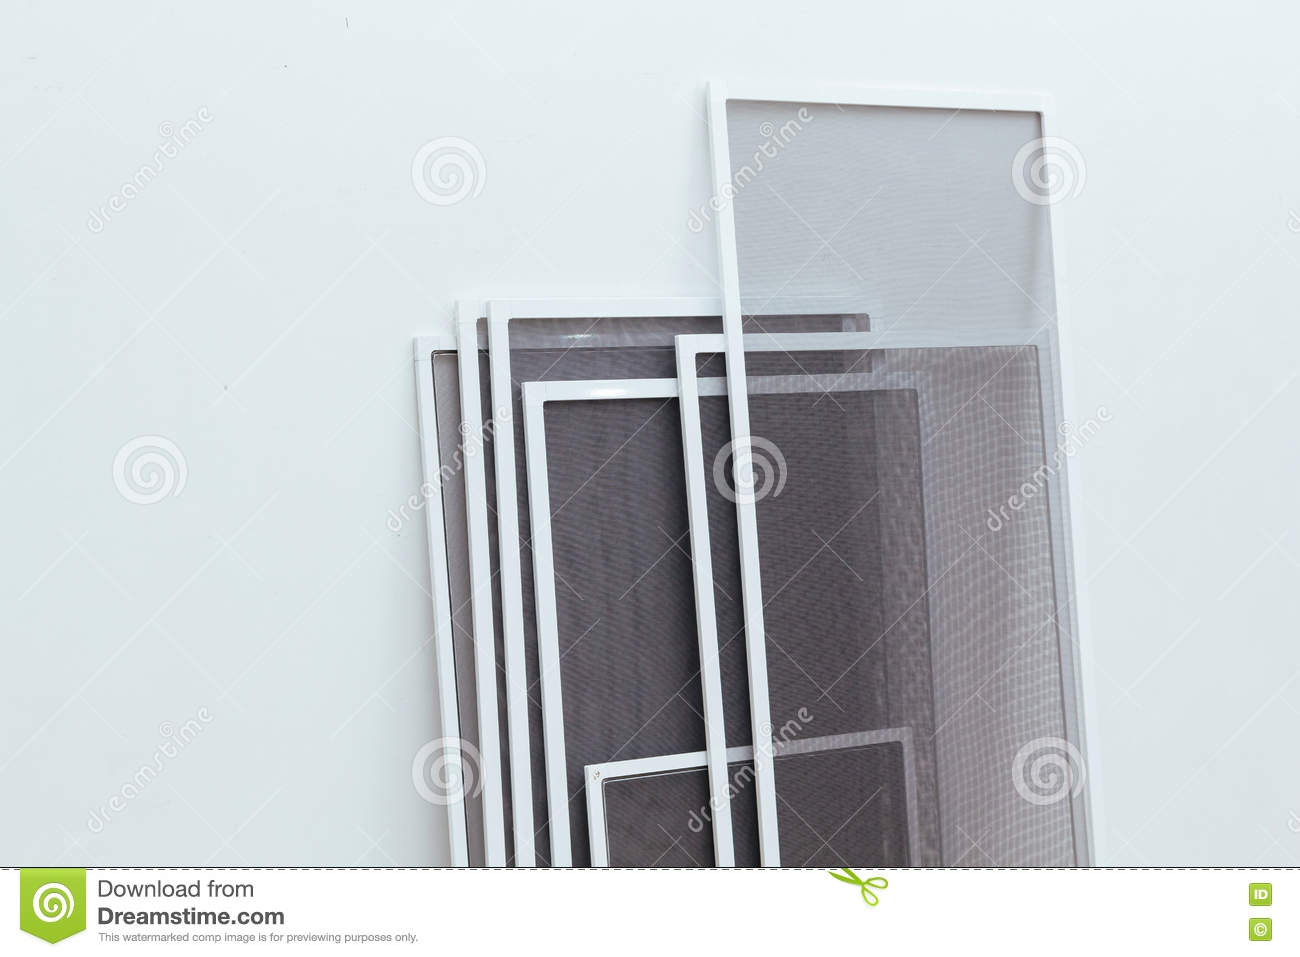 Royalty-Free Stock Photo & Insect Screen For Windows And Doors Stock Image - Image: 75242603 Pezcame.Com